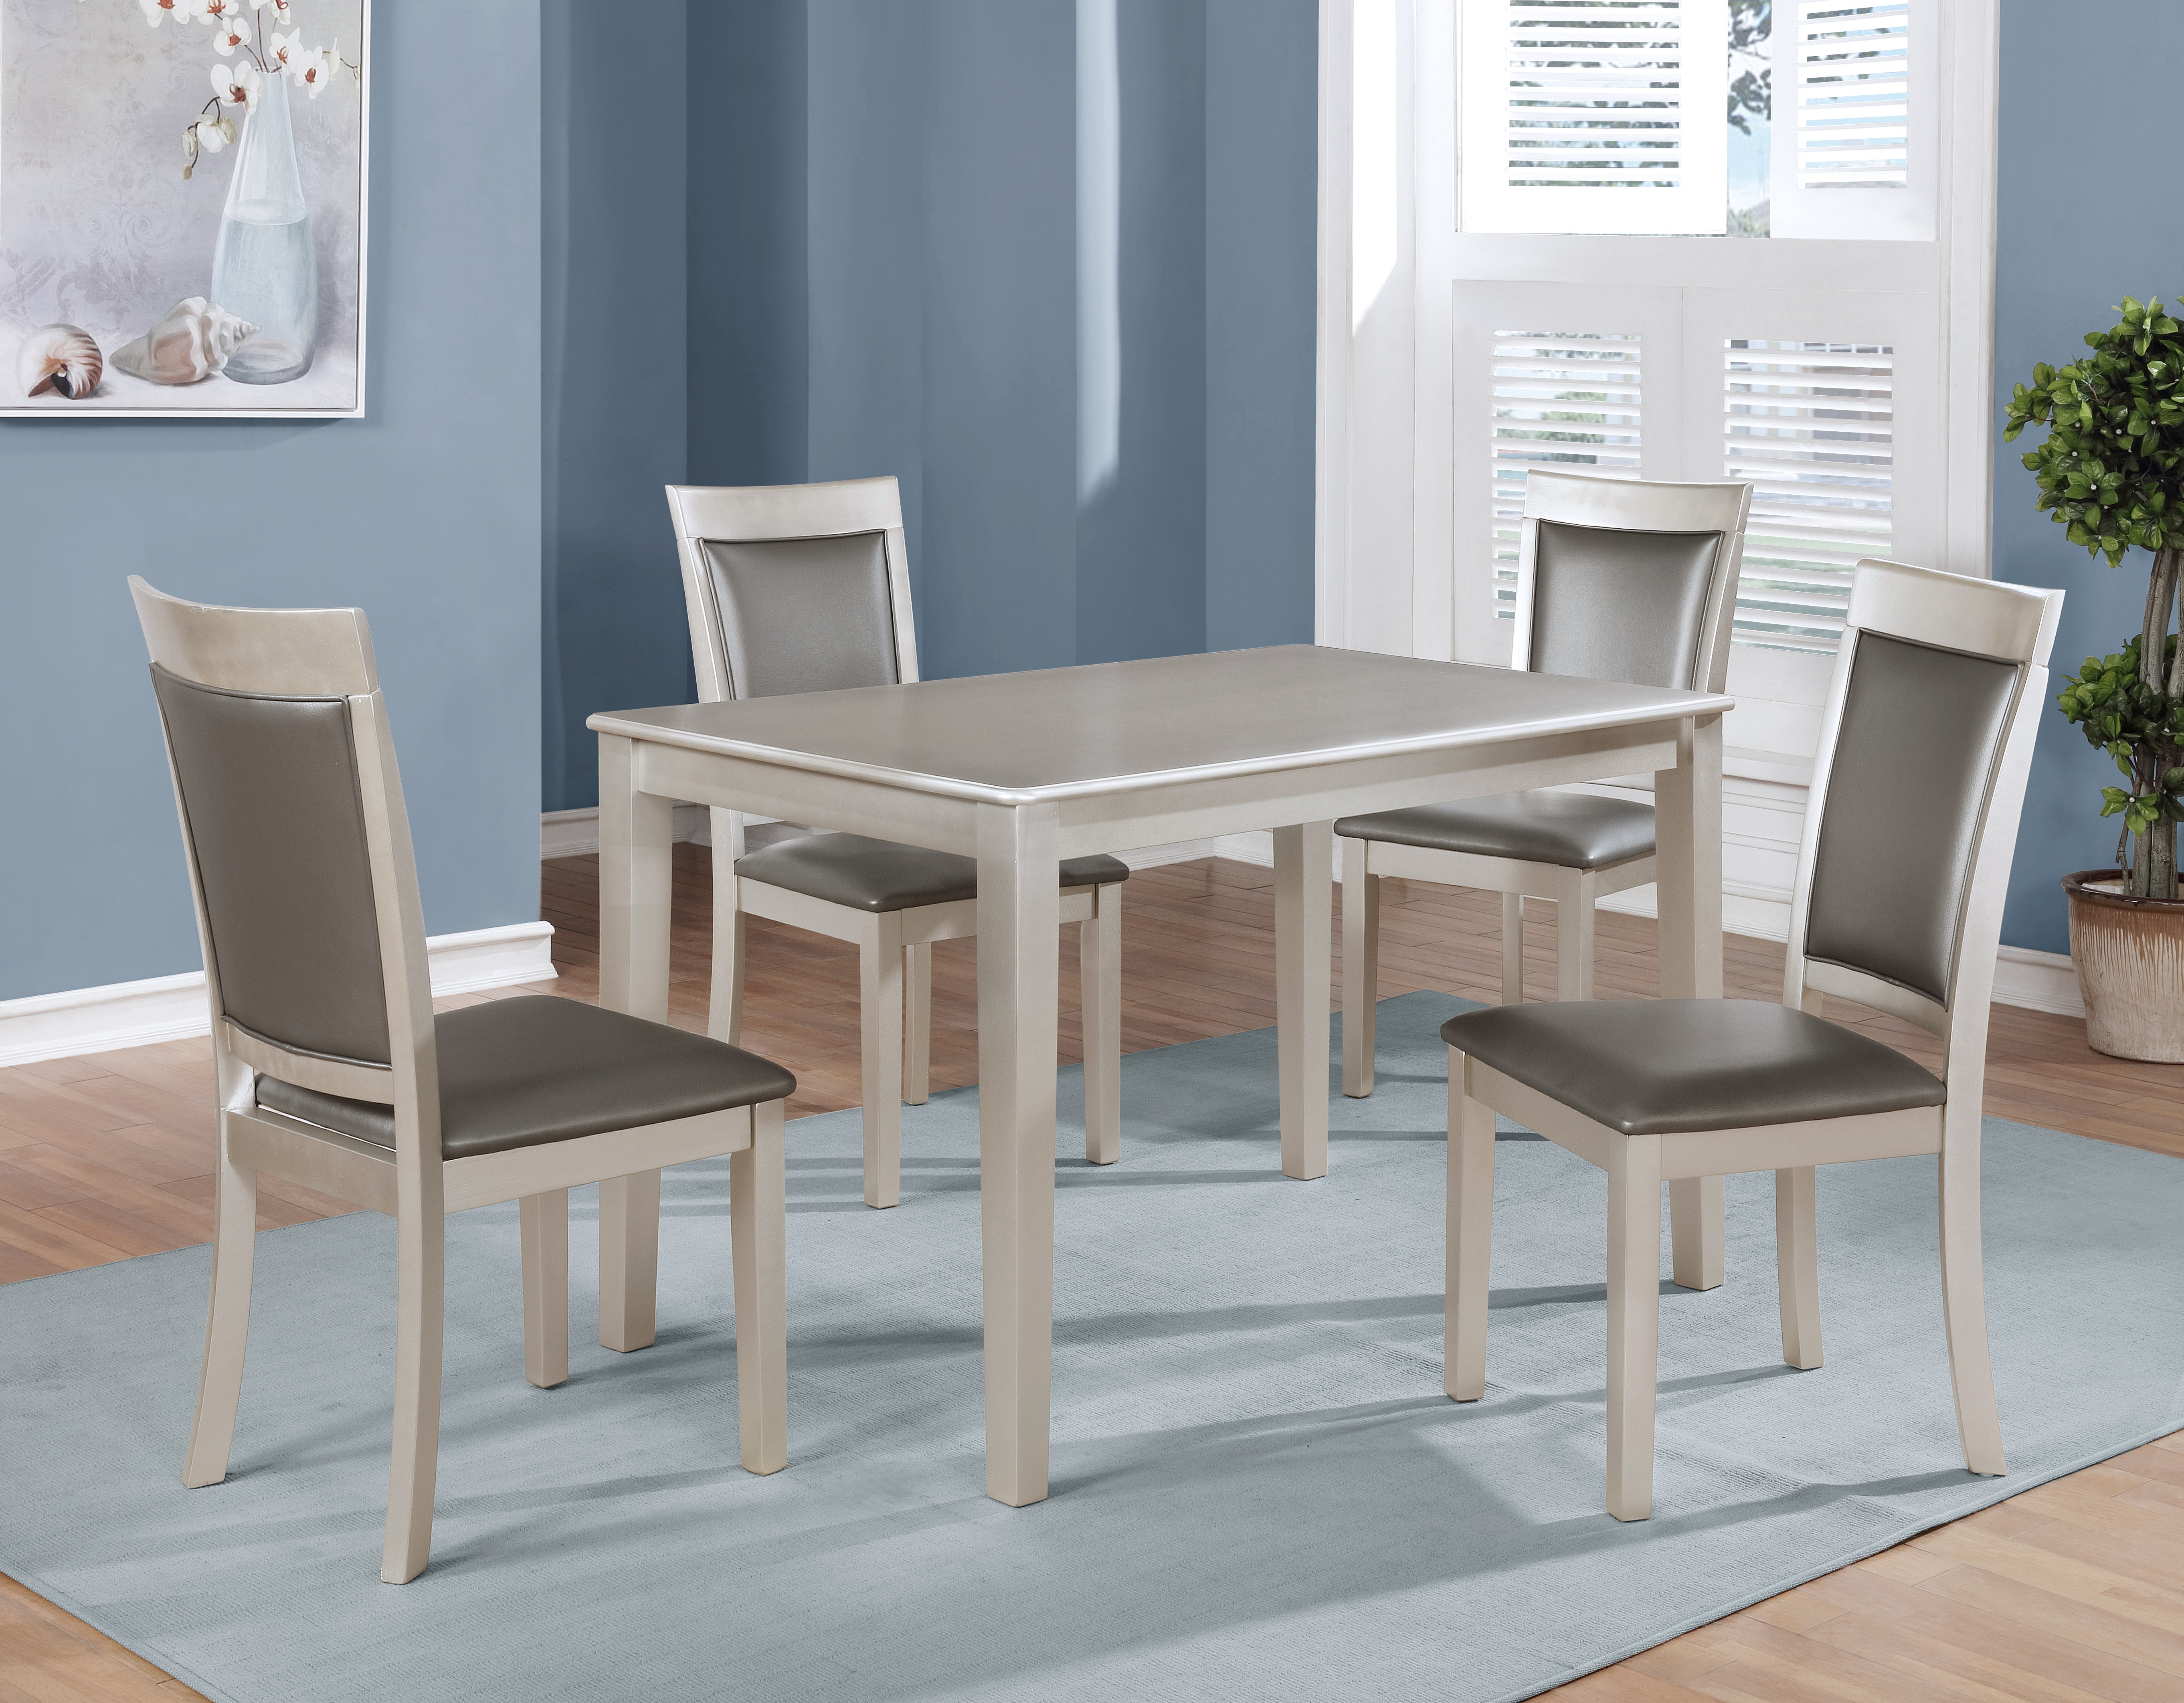 Maynard 5 Piece Dining Sets Throughout Current Kitterman 5 Piece Dining Set (View 6 of 20)